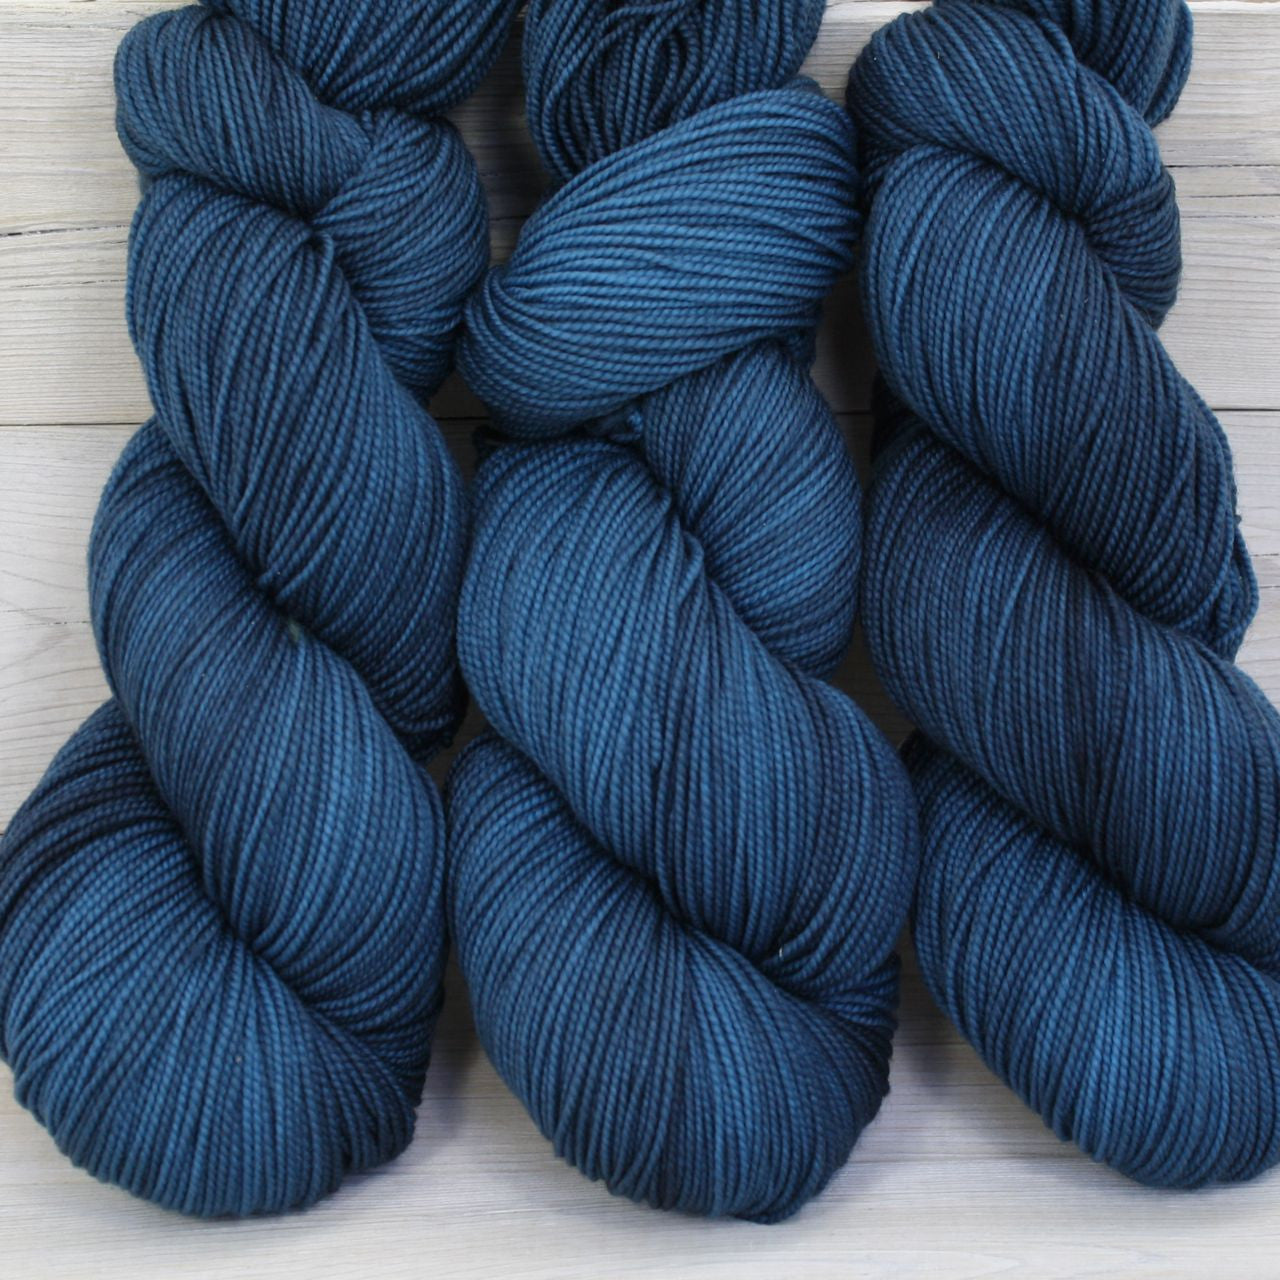 Celeste Yarn | Colorway: Marine | Overstock